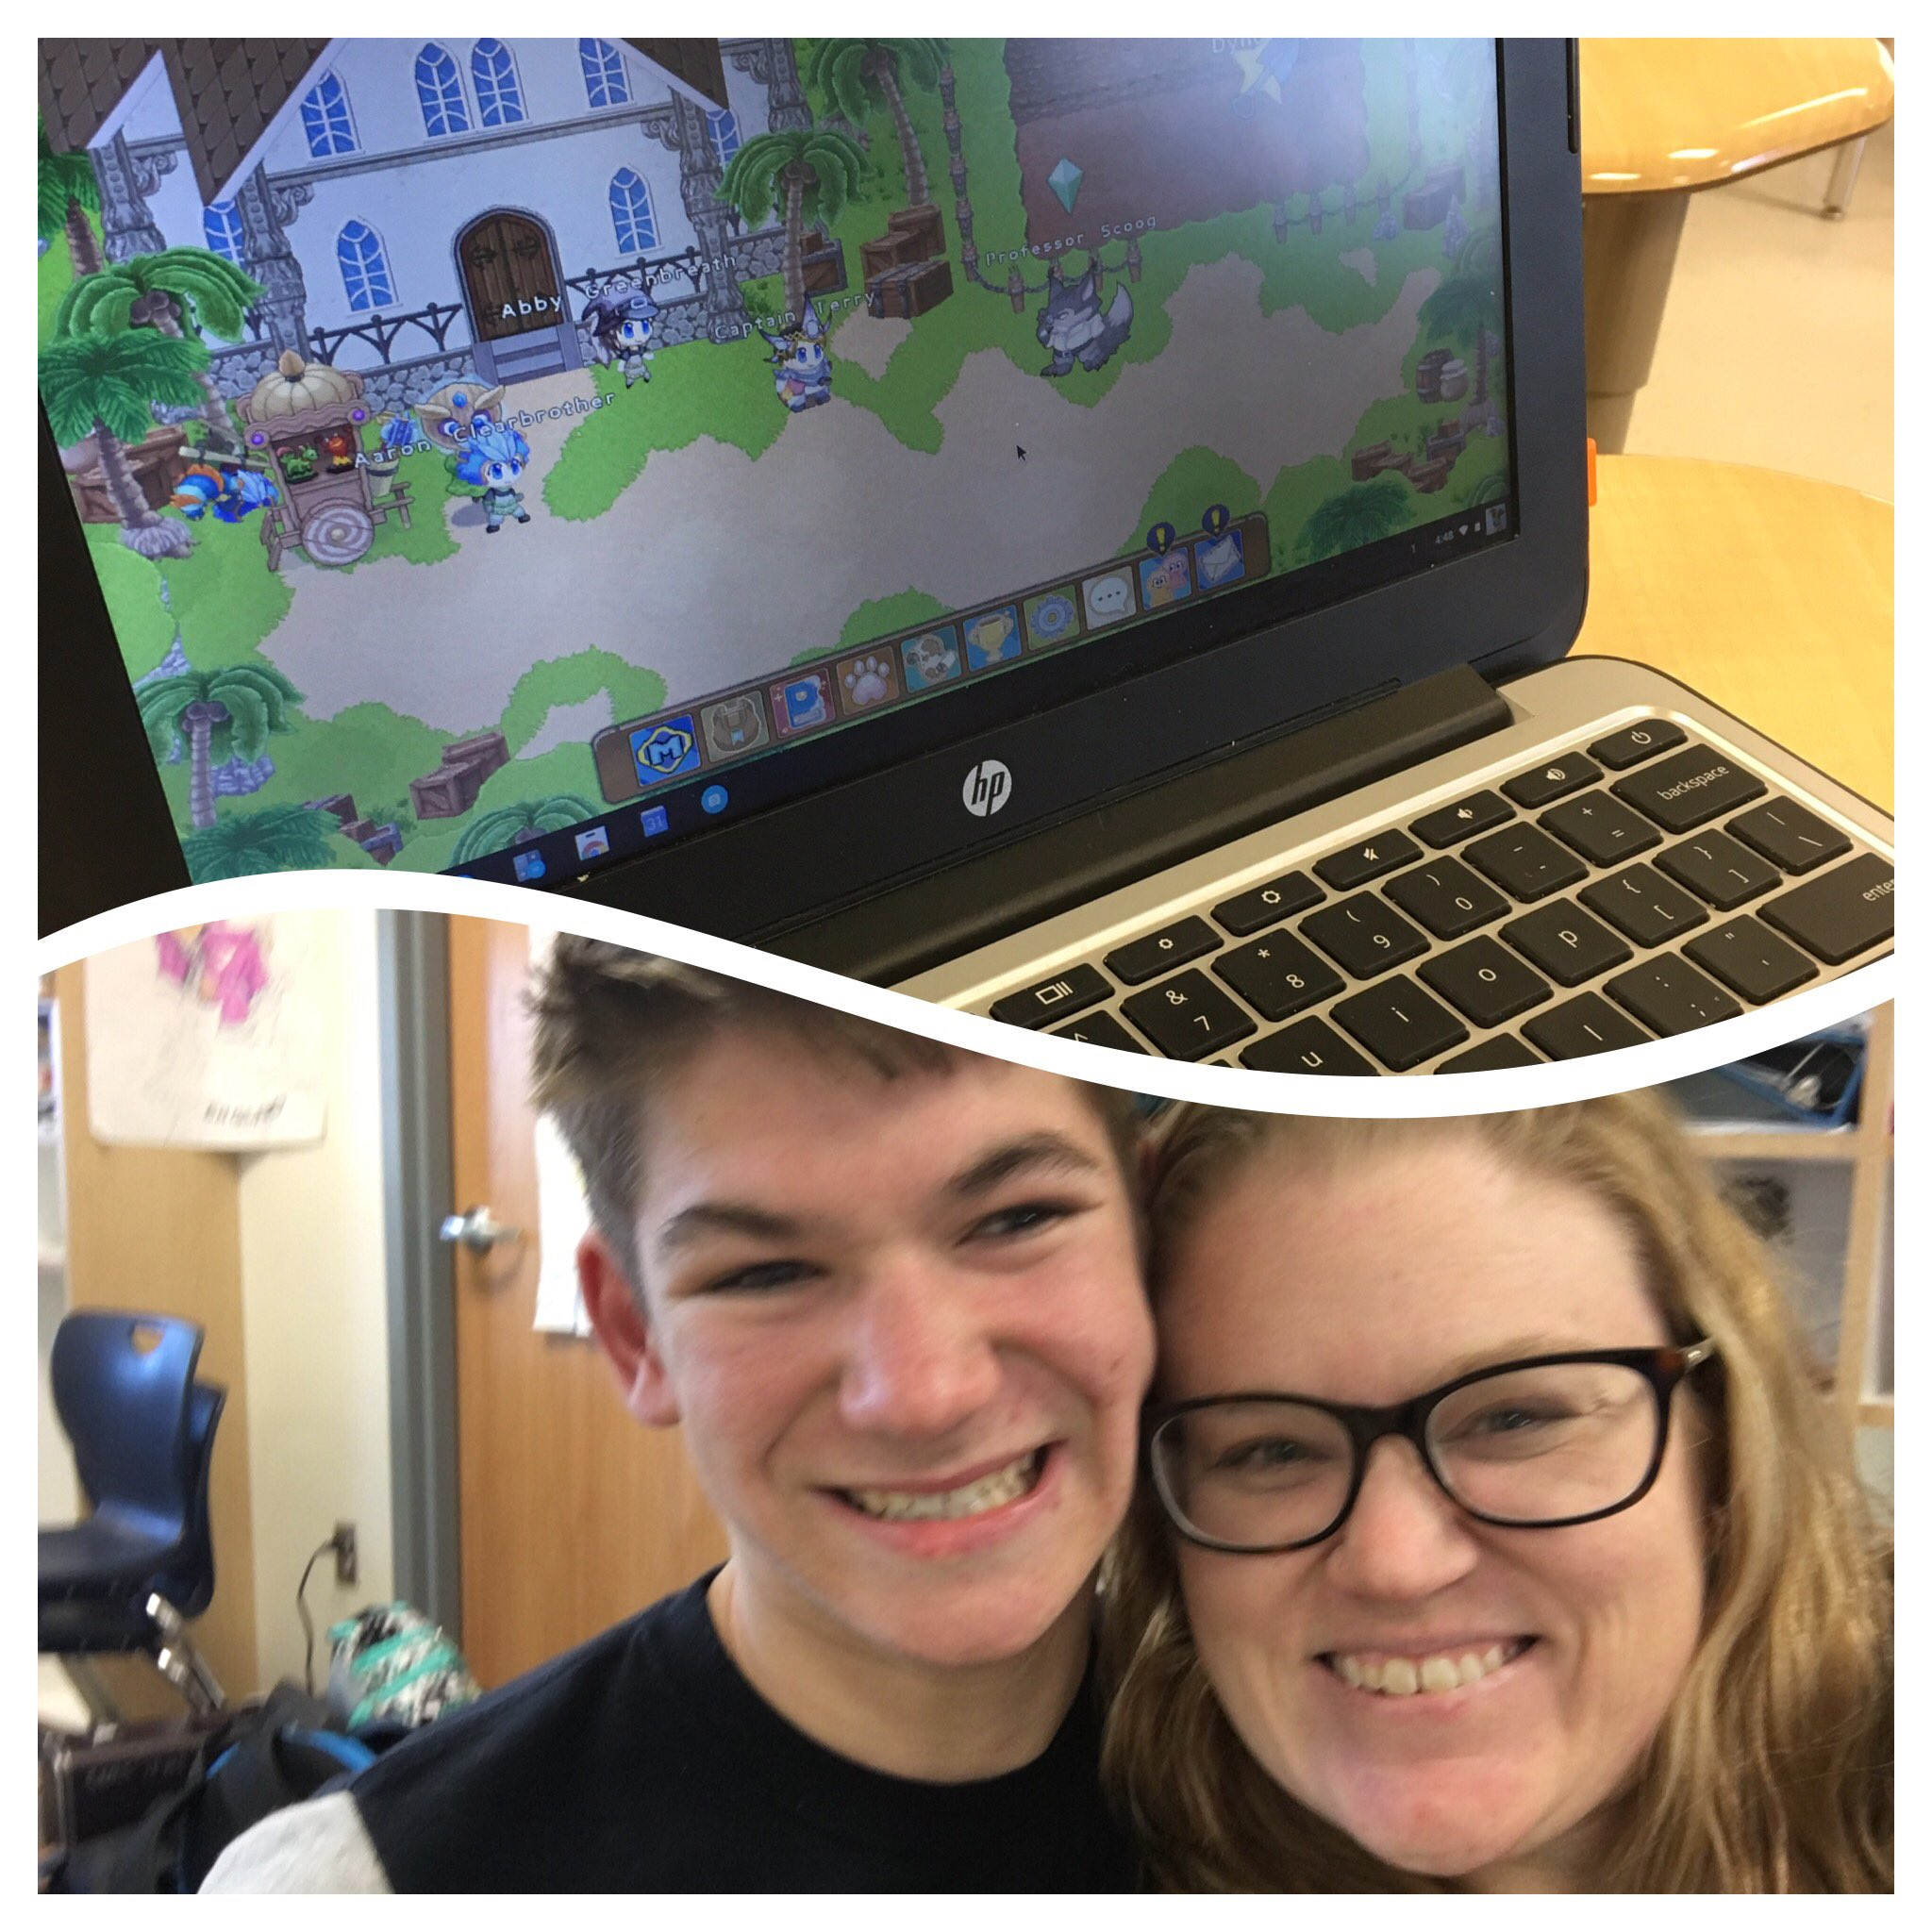 #studentsasteachers A past student teaching me how to use @ProdigyGame in my classroom w/my current students! @Clearcreeknews #scsharefair https://t.co/QJrf15tjba